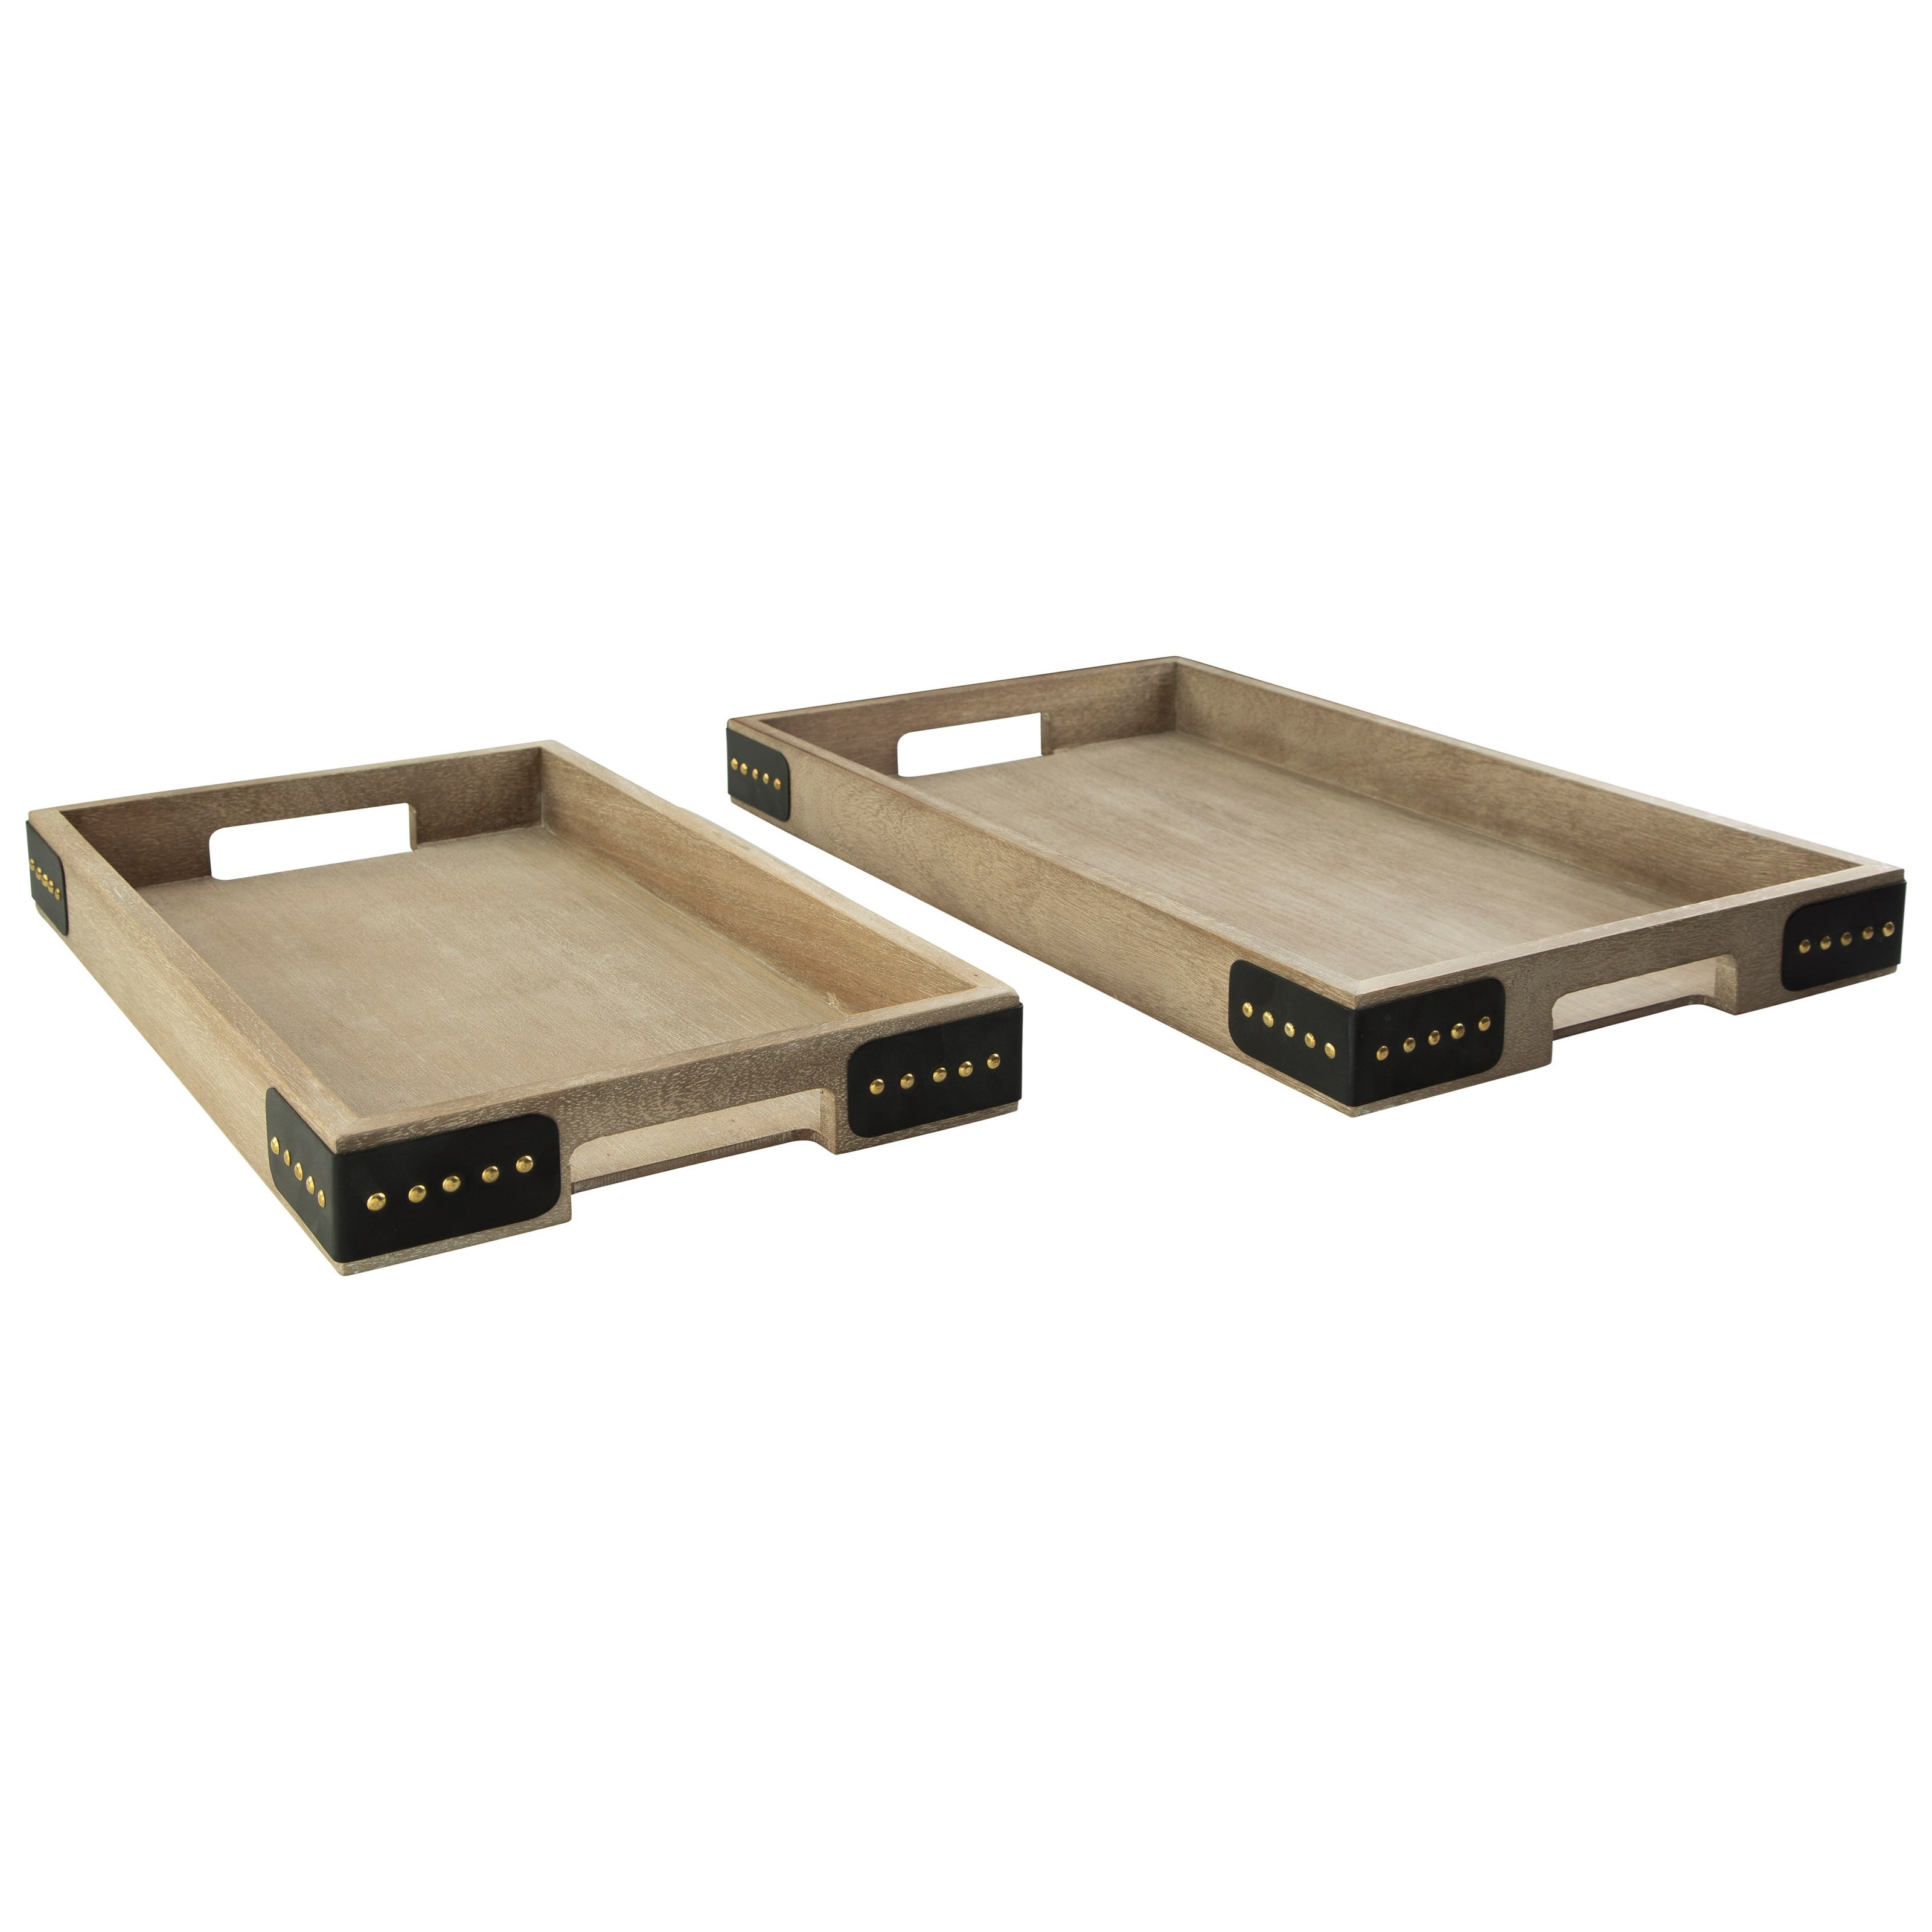 Accents 2-Piece Missa Brown Tray Set by Benchcraft at Virginia Furniture Market